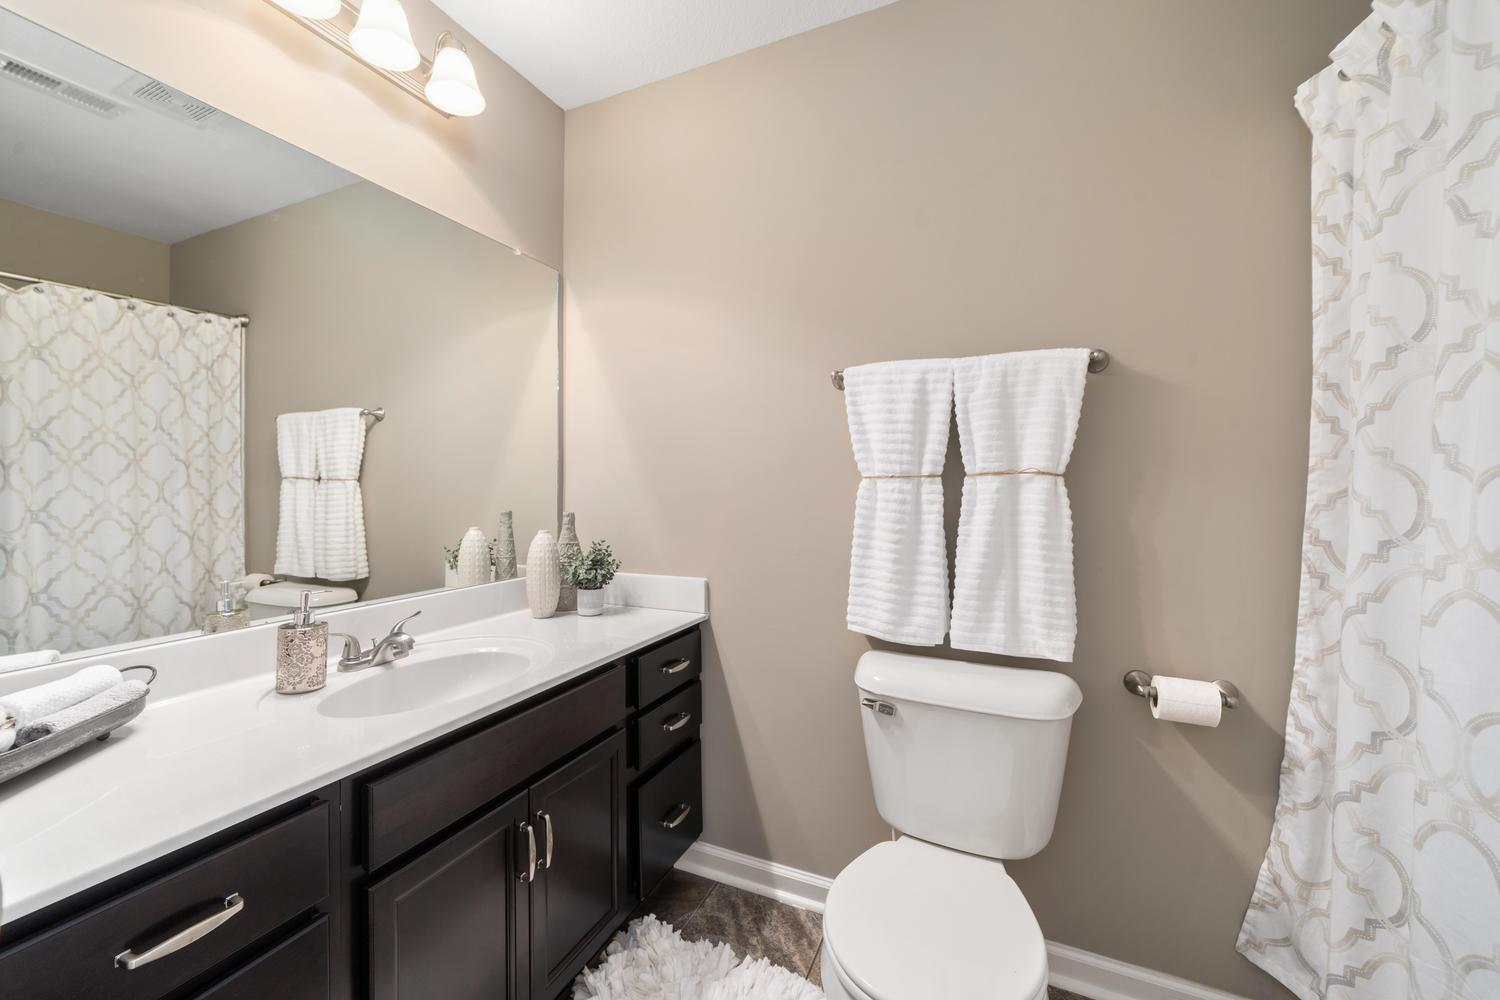 Check Out This Amazing New Construction townhome located close to Tennova Healthcare & Zoned for Rossview - Stainless Steel Appliances - Granite Counters in the Kitchen is Standard Selection - LVT Floors Installed on Main Level - Community Clubhouse & Pool - Pick Between 8 Different Selection Packages BEFORE August 15th